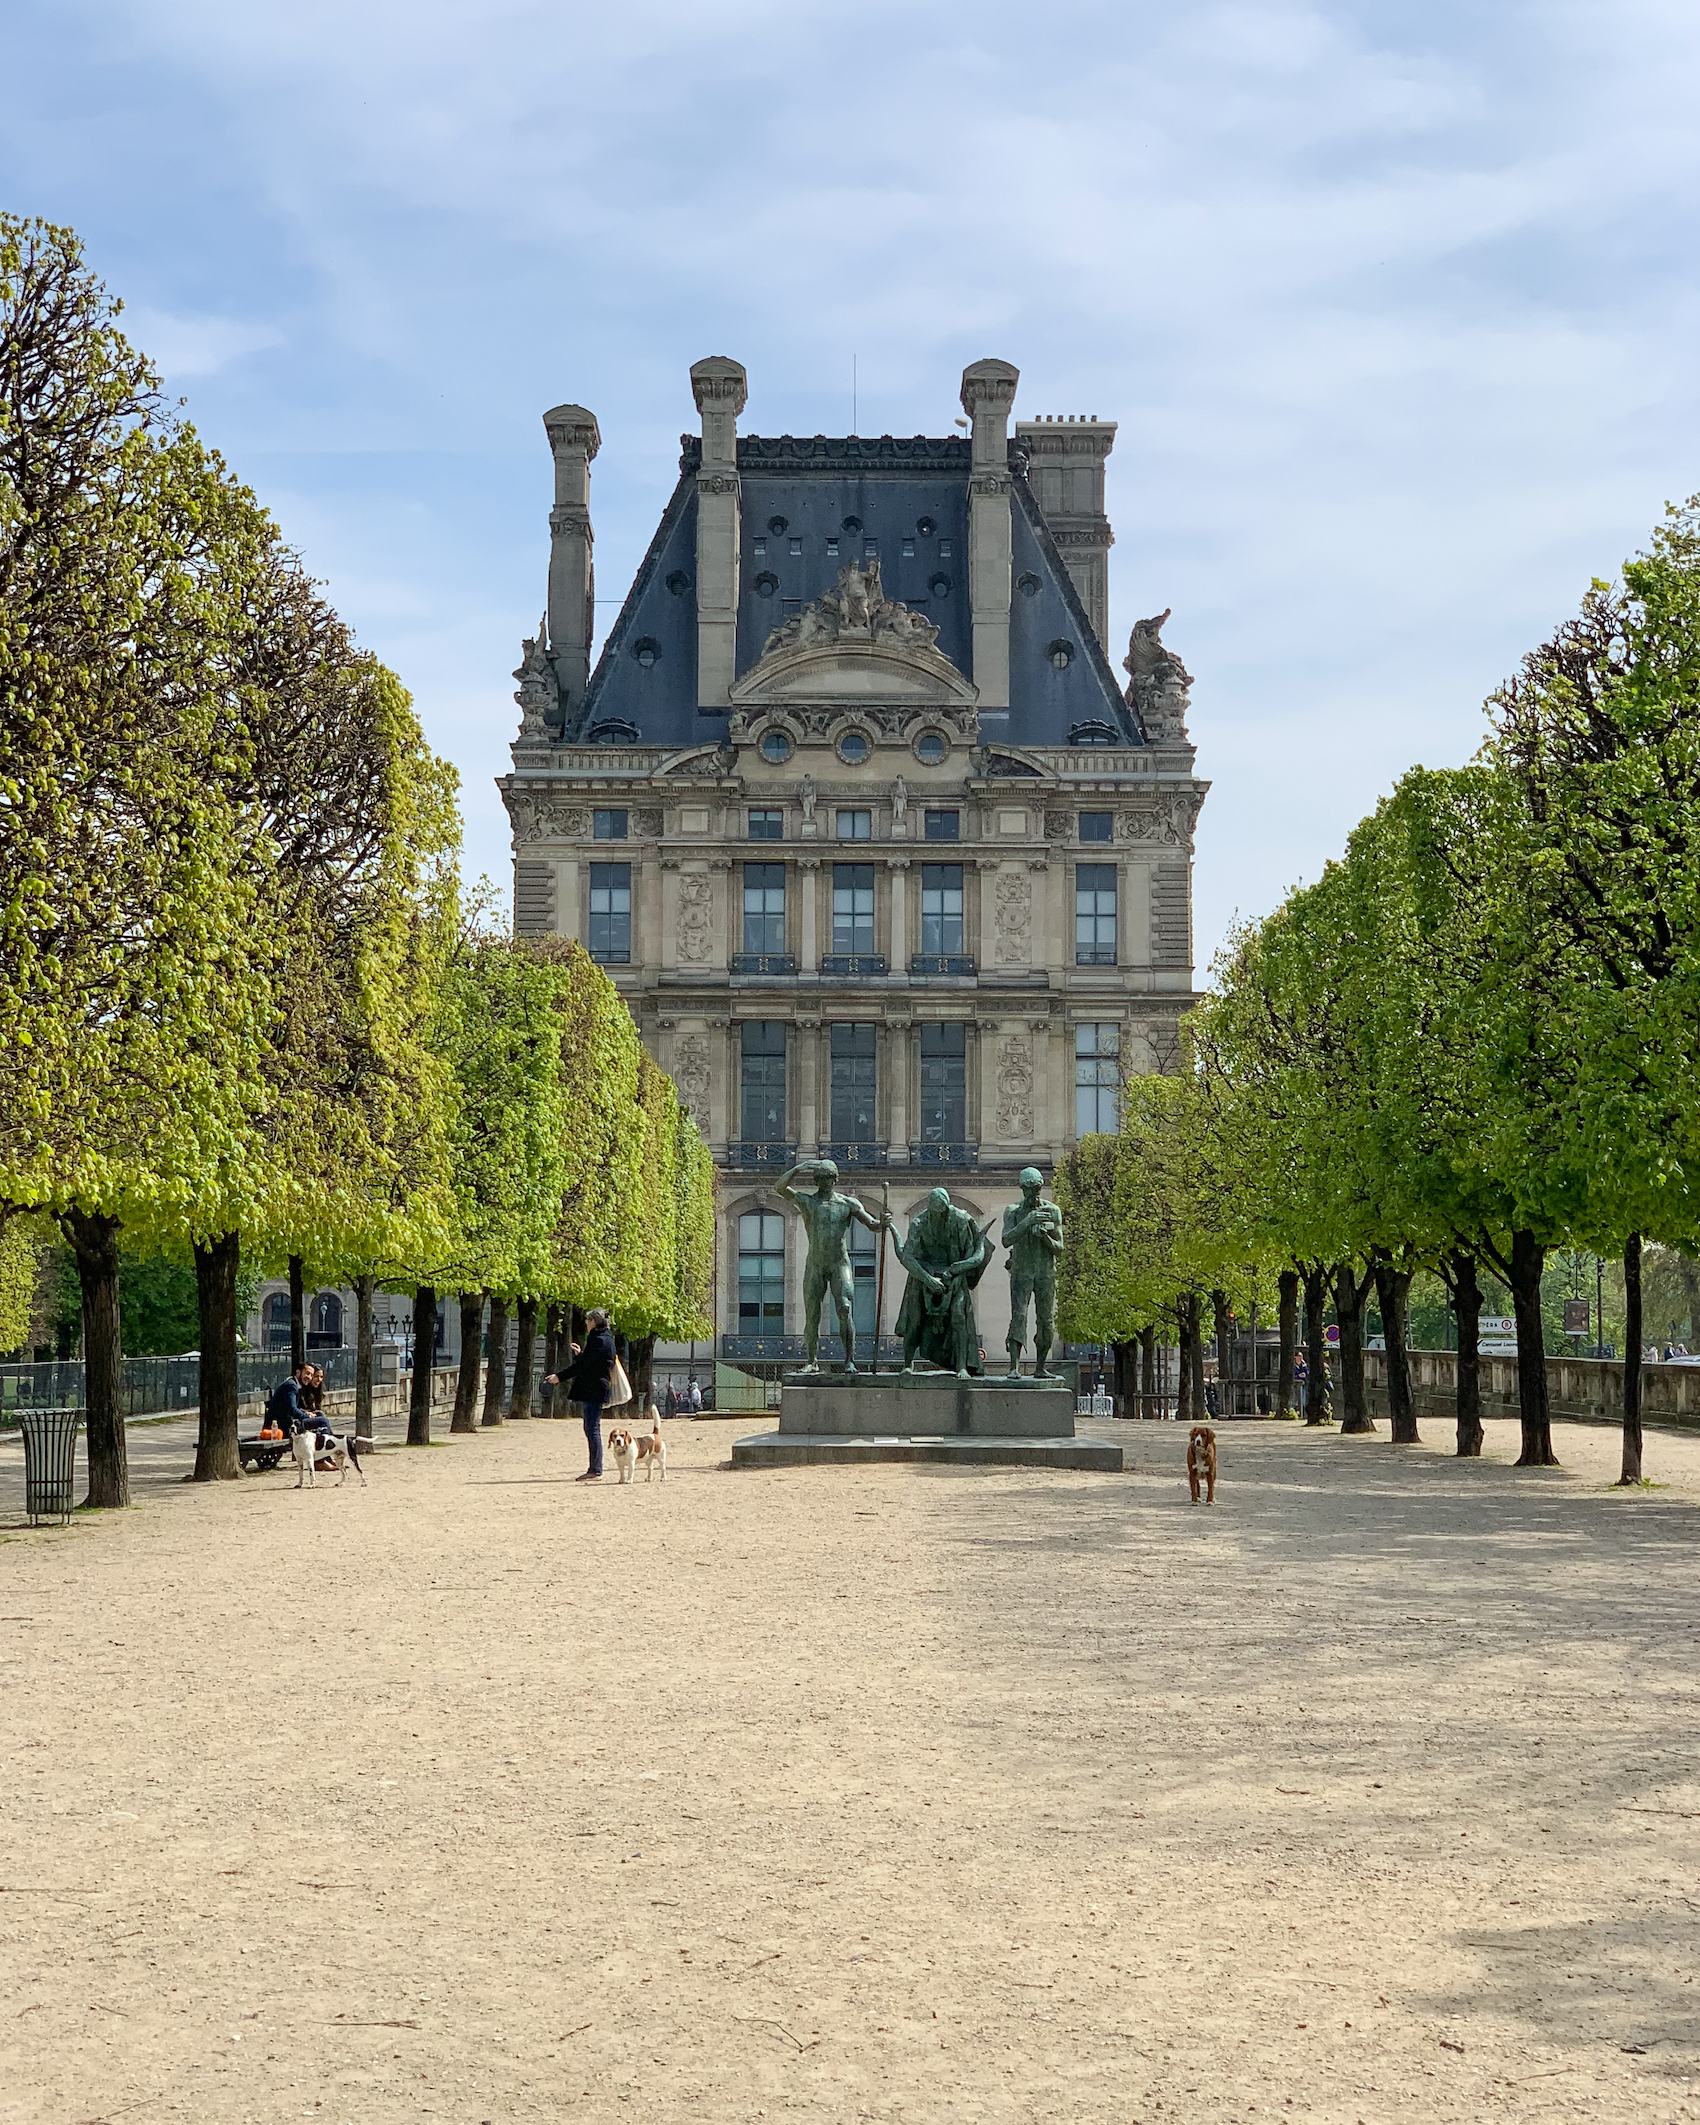 Tuileries Garden in Paris with the Louvre